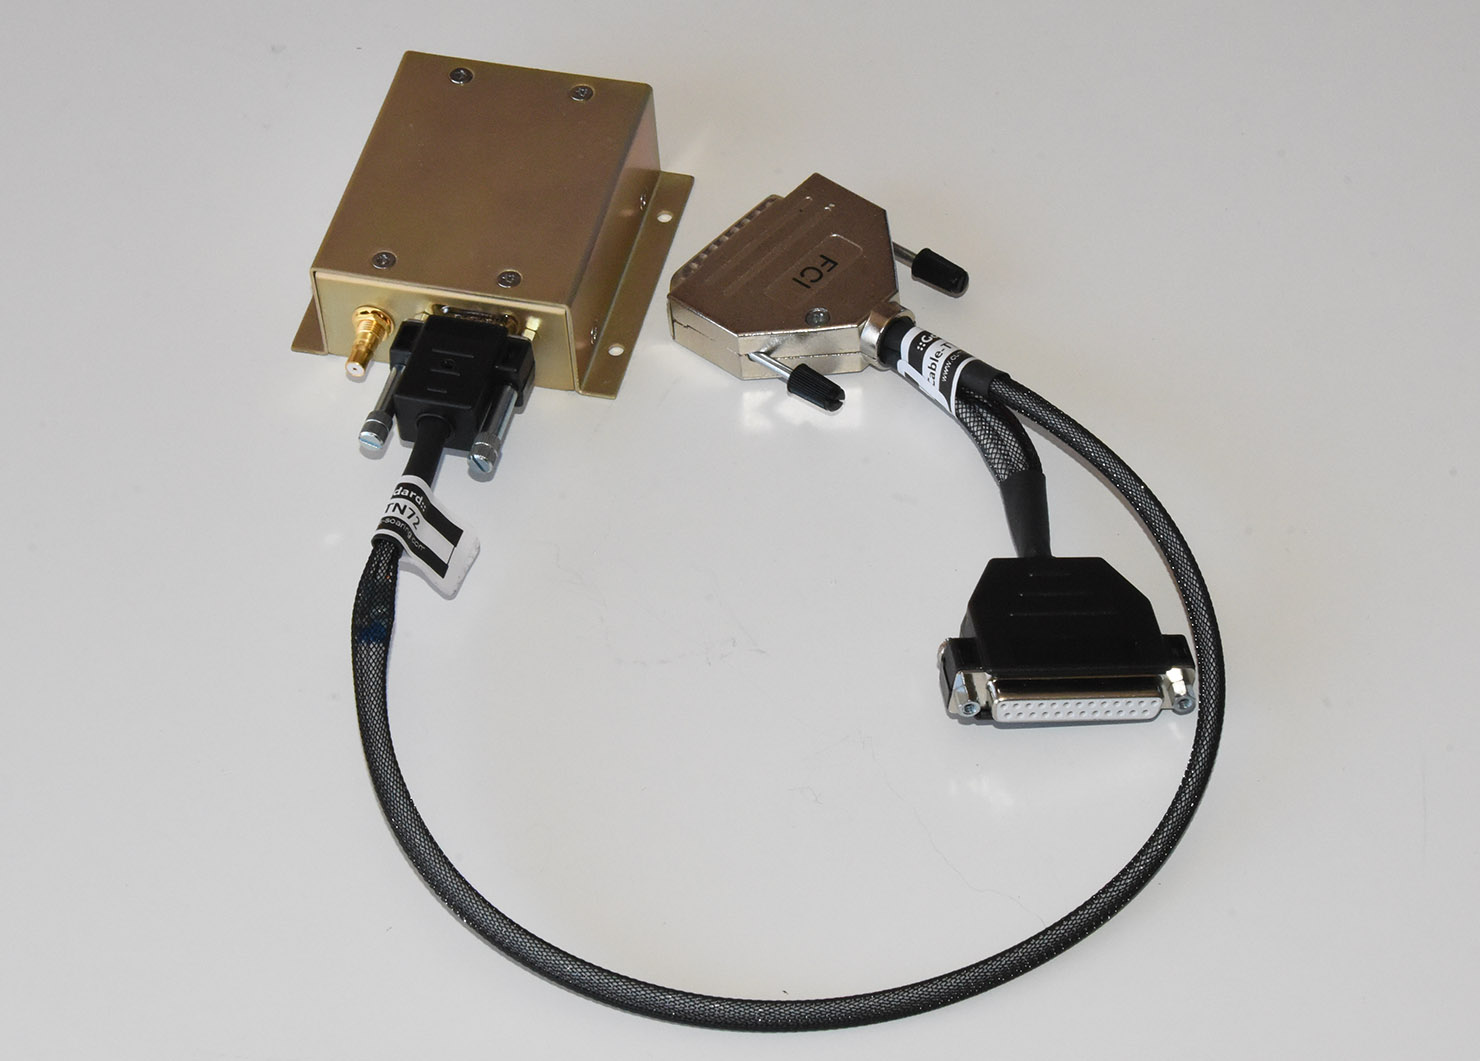 Cumulus Soaring Inc Trig Wire Harness Installation Goddard Cable Tt22 Tn72 0p5 Connects Between The Existing Wiring And Great For Adding A To An